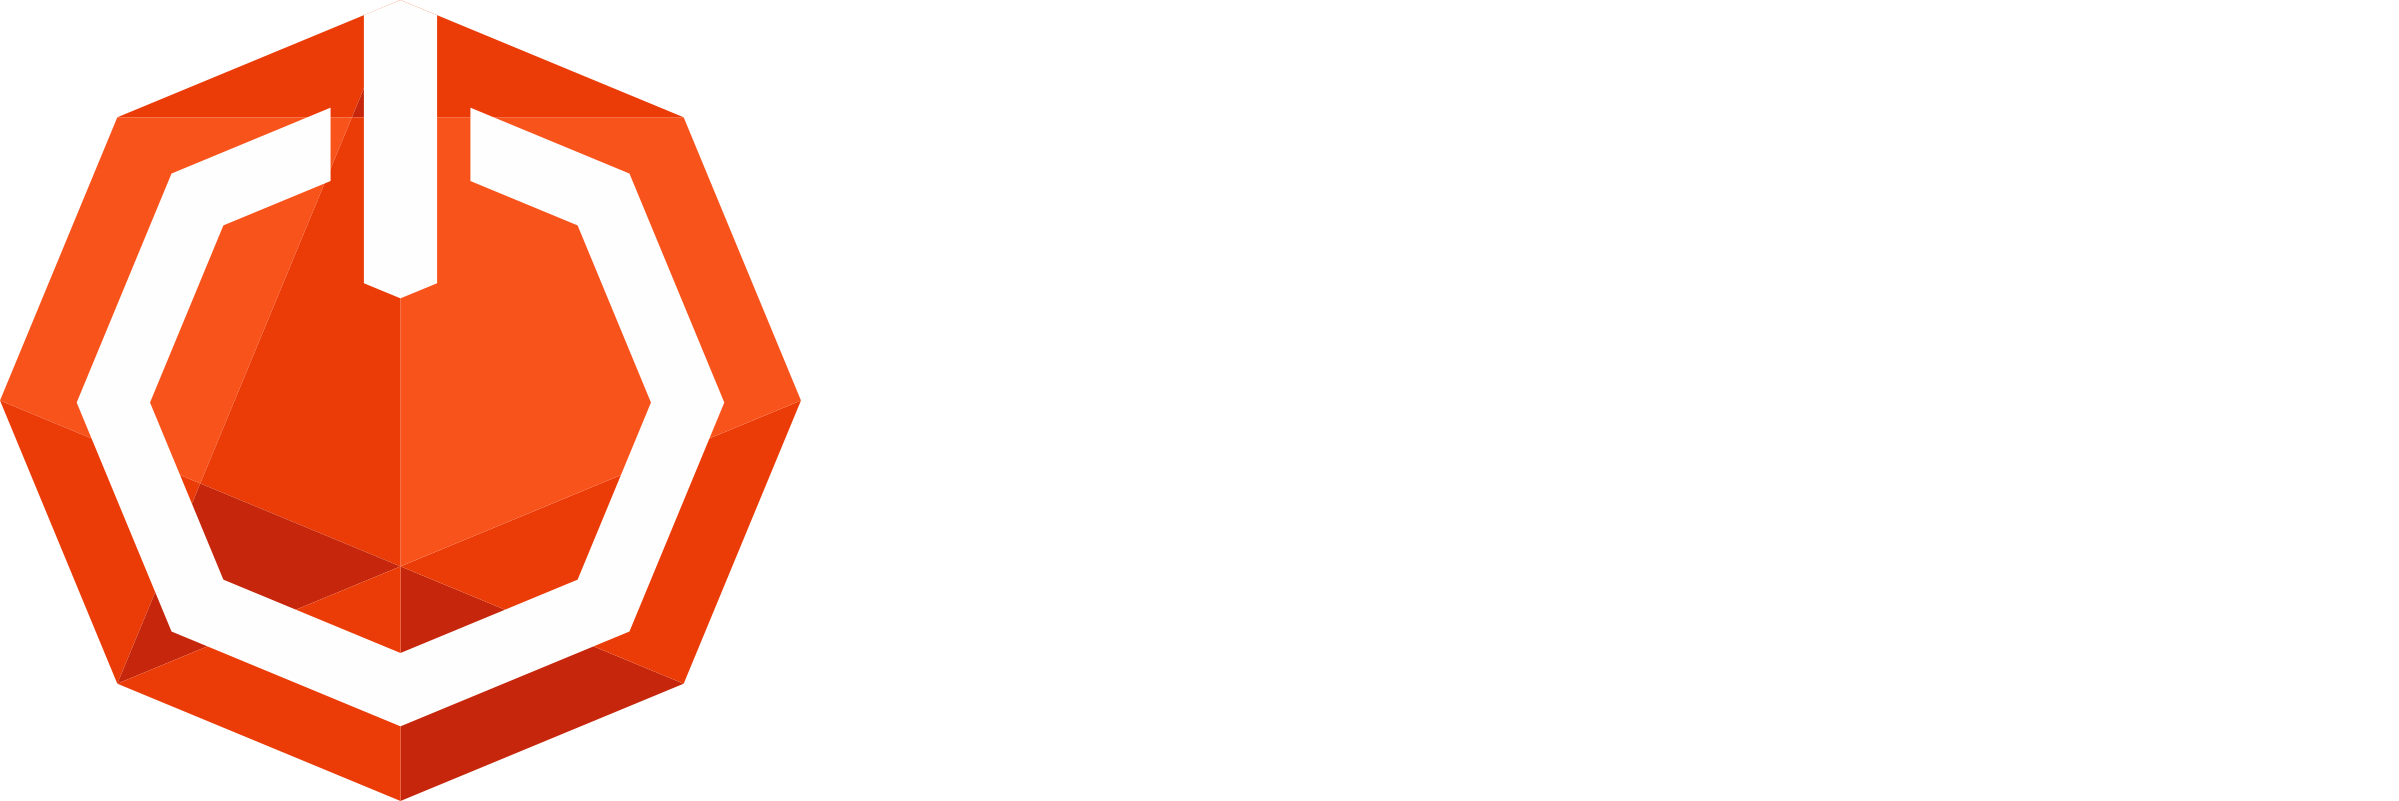 The Source Church